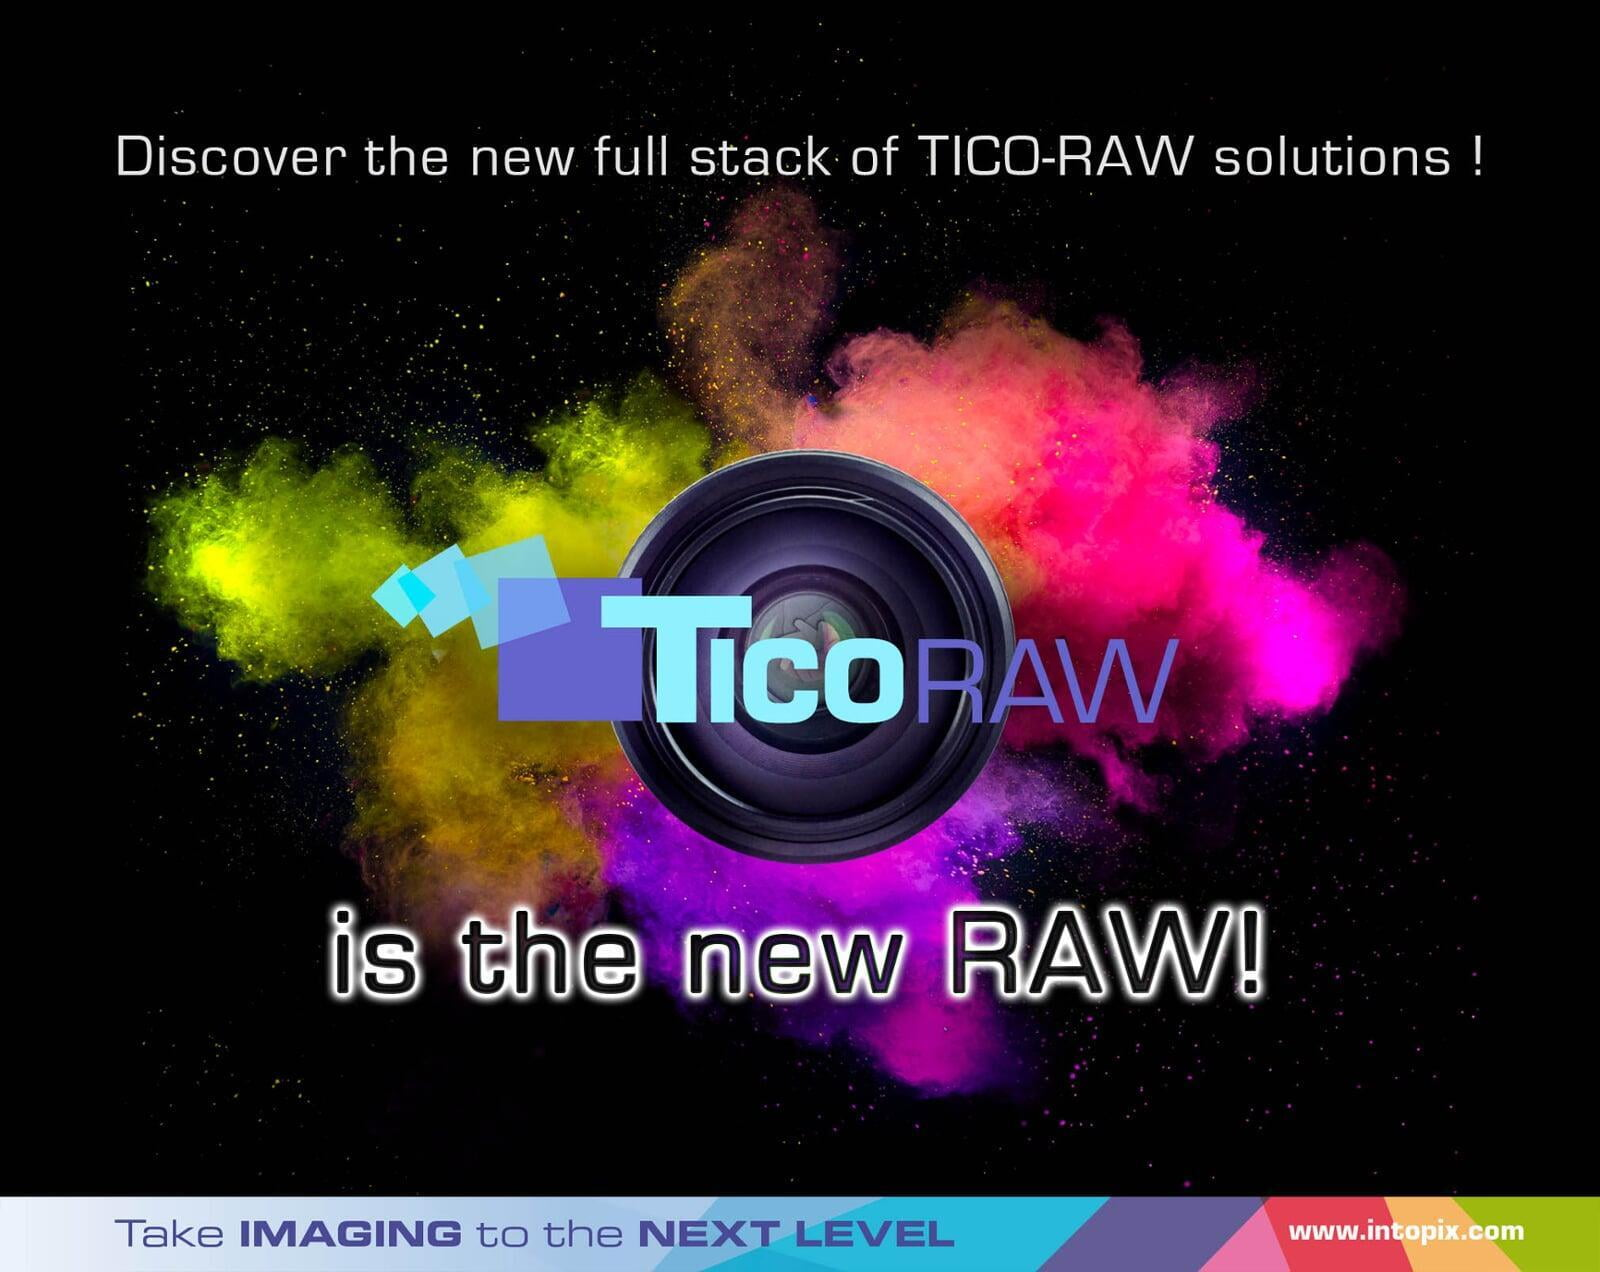 The new TICO-RAW full stack to improve RAW image workflows and camera designs